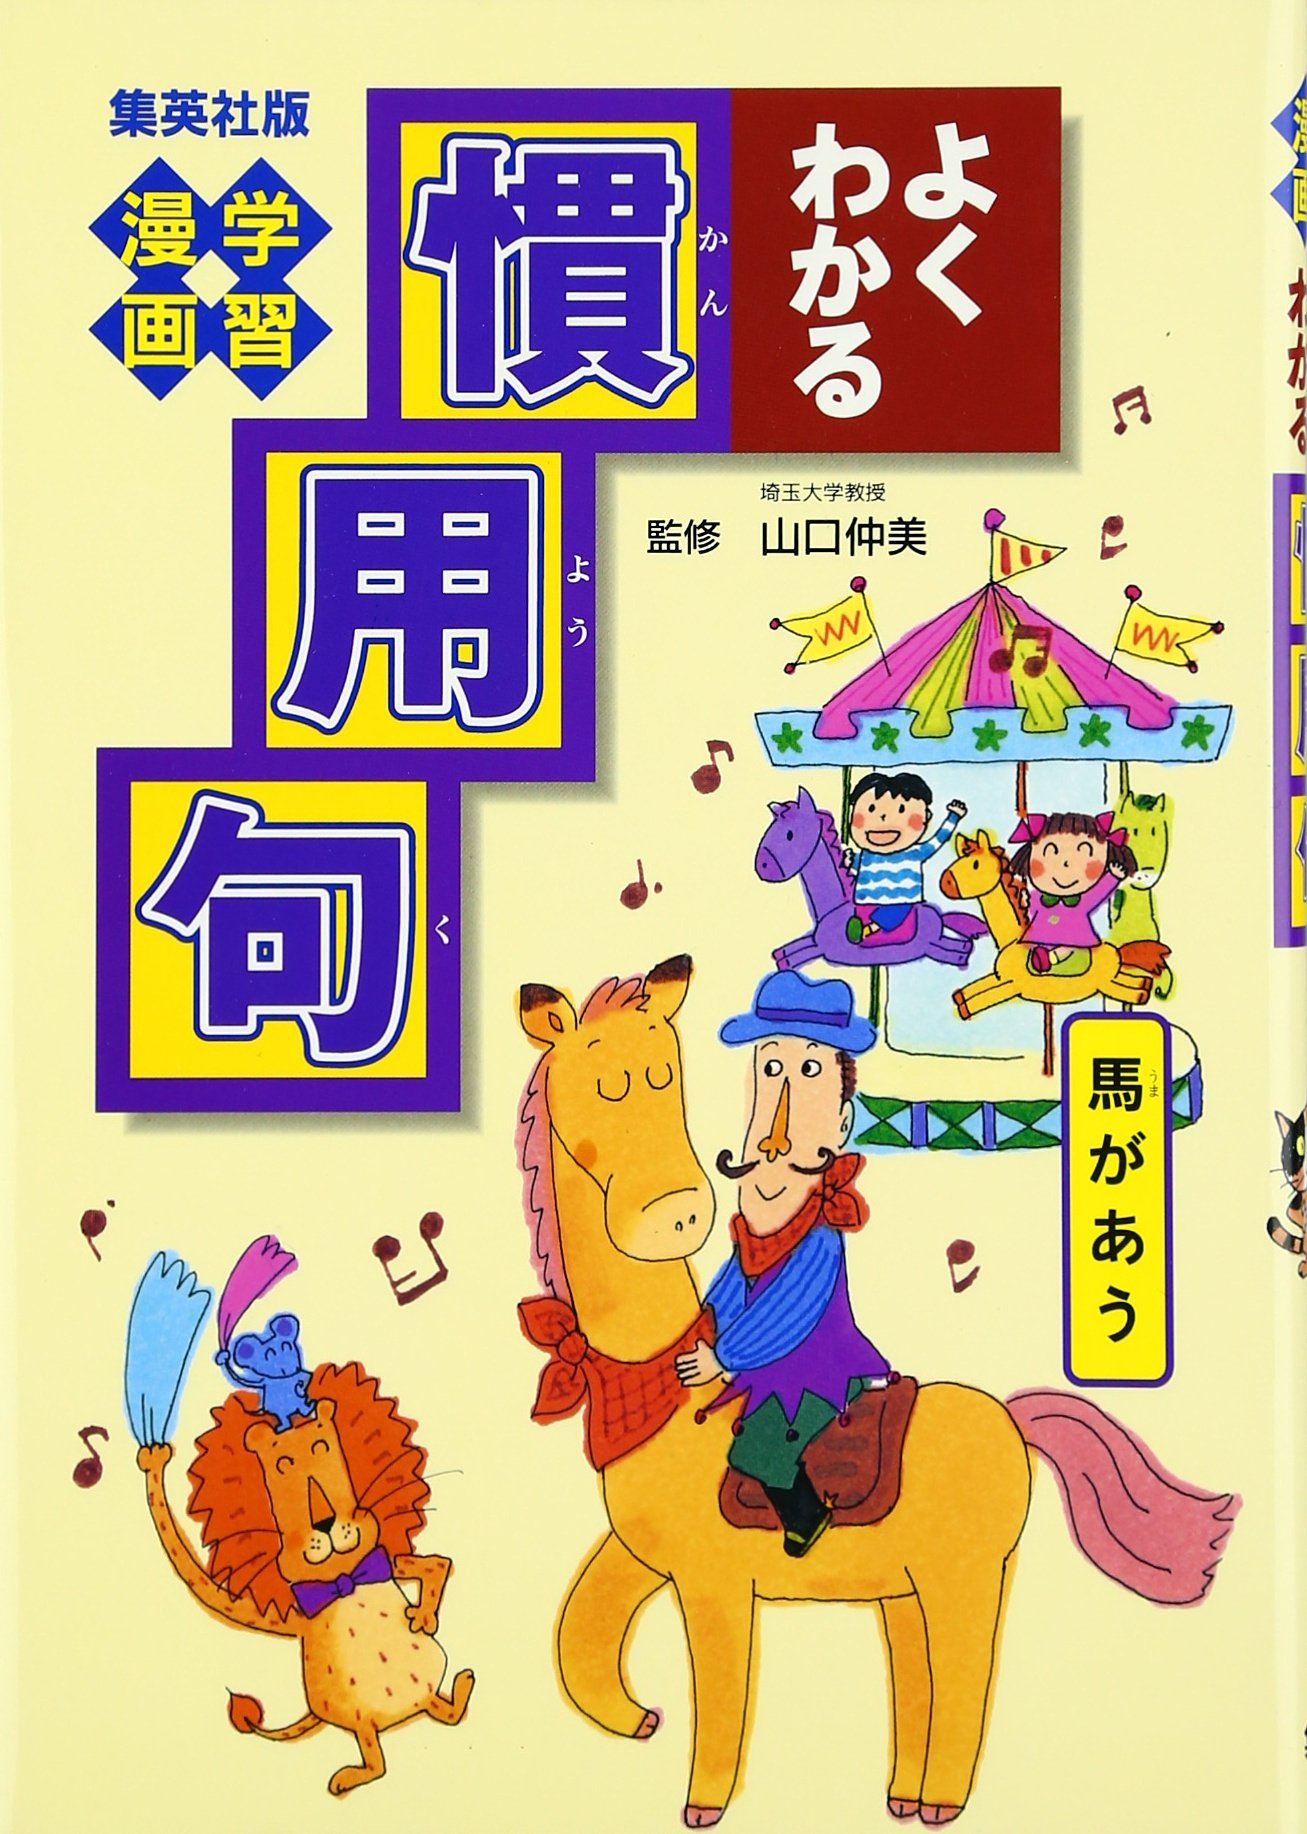 Read Online (Series to understand better learning cartoon) idiom can be seen well learning cartoon (Shueisha manga version and Learning) ISBN: 4082880879 (2003) [Japanese Import] ebook